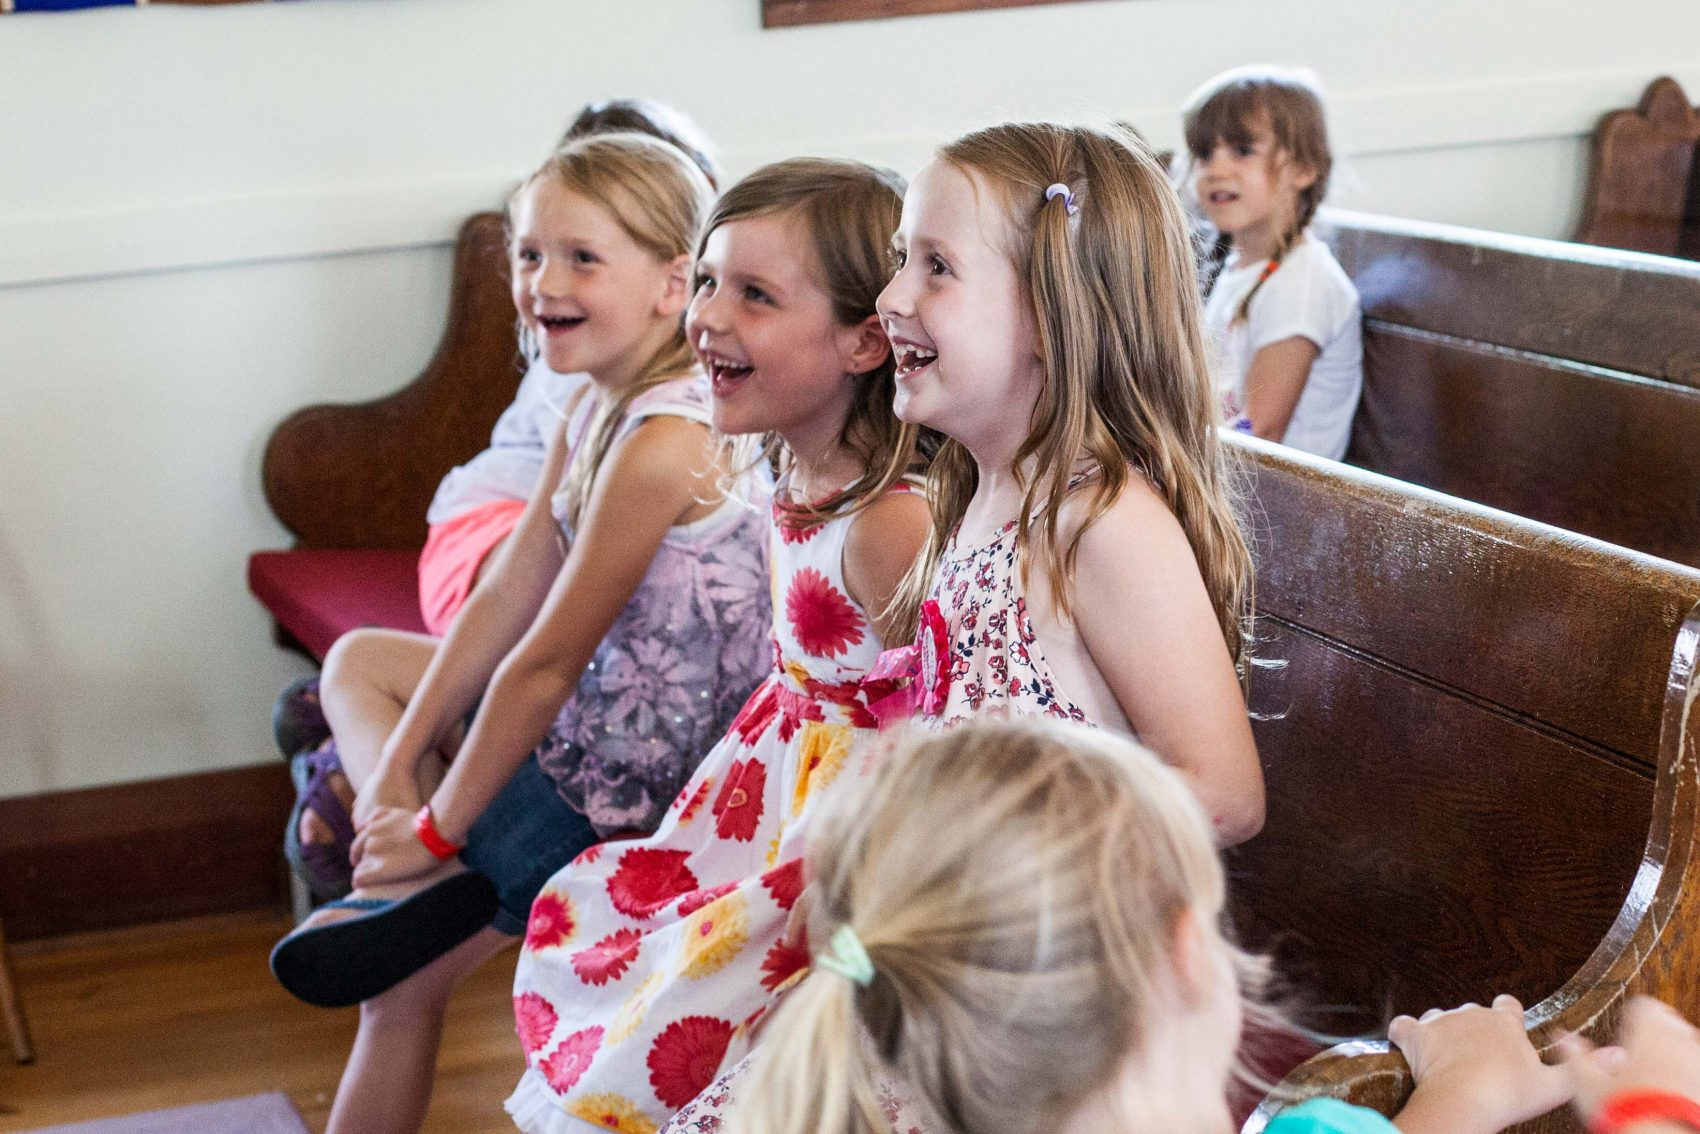 Three young campers look to the left smiling and laughing while sitting on church pews.